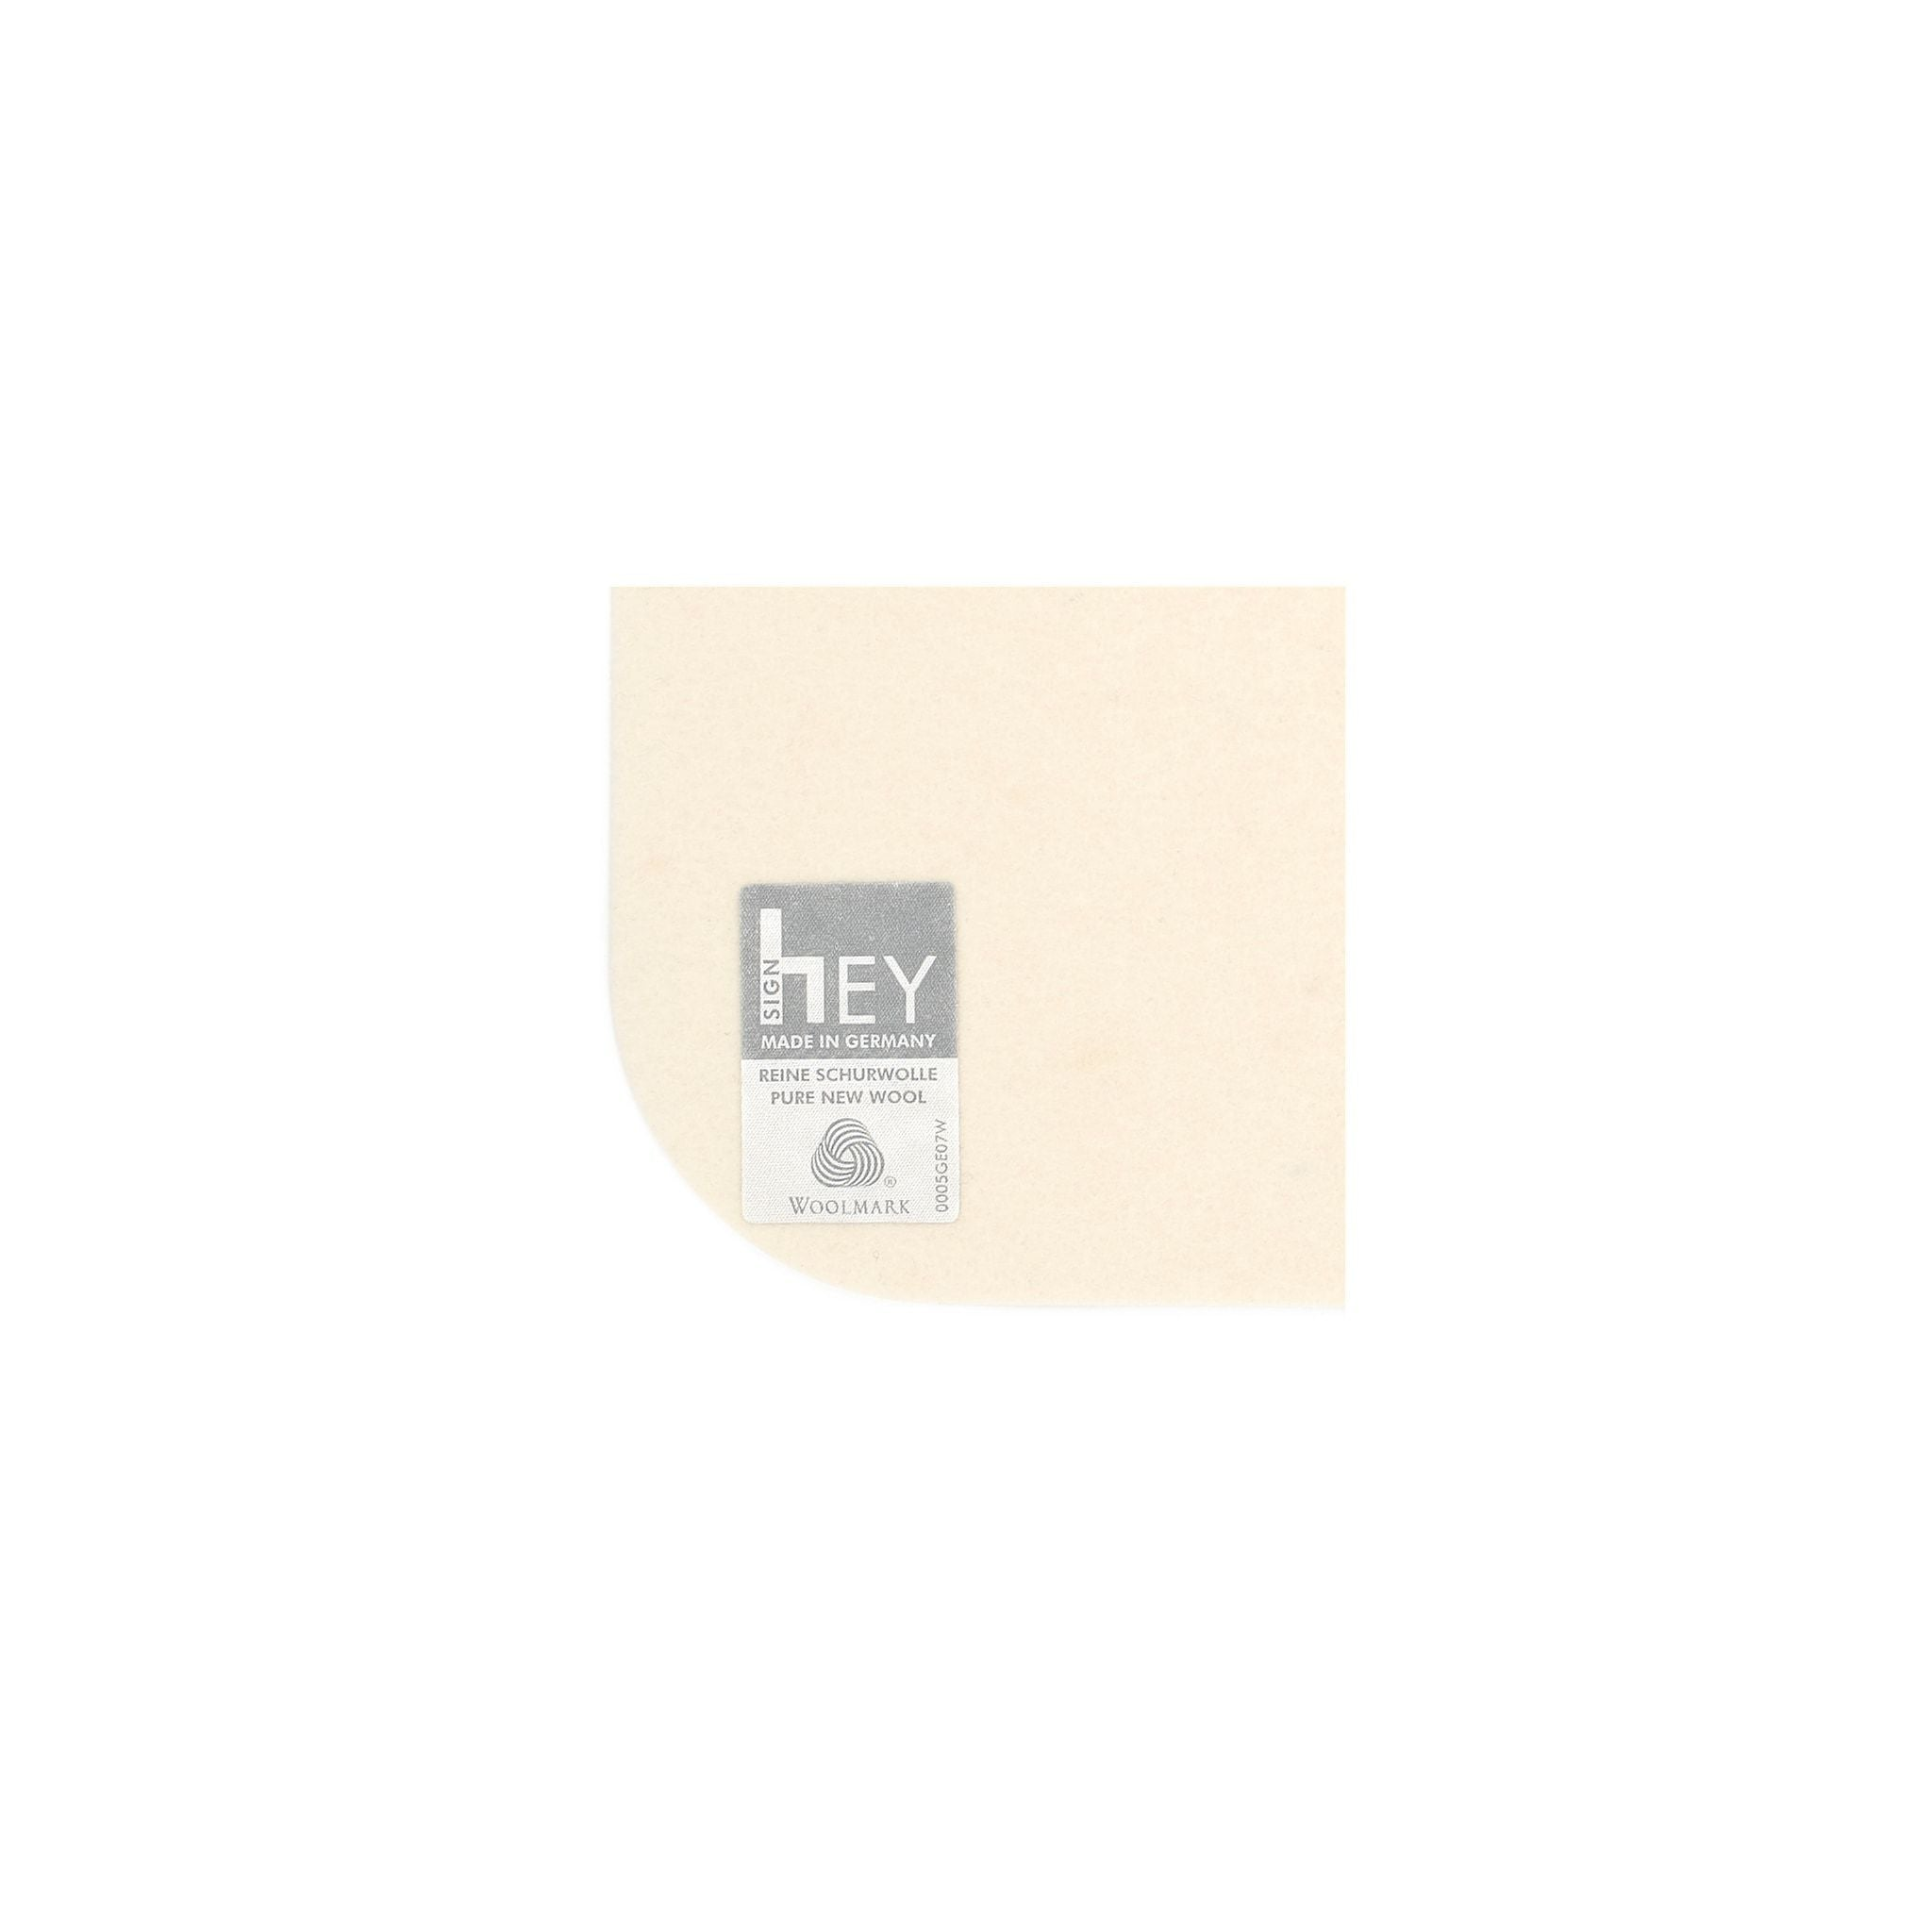 Rectangular Felt Placemat in White by Hey-Sign 300134503 looking at Closeup-Label